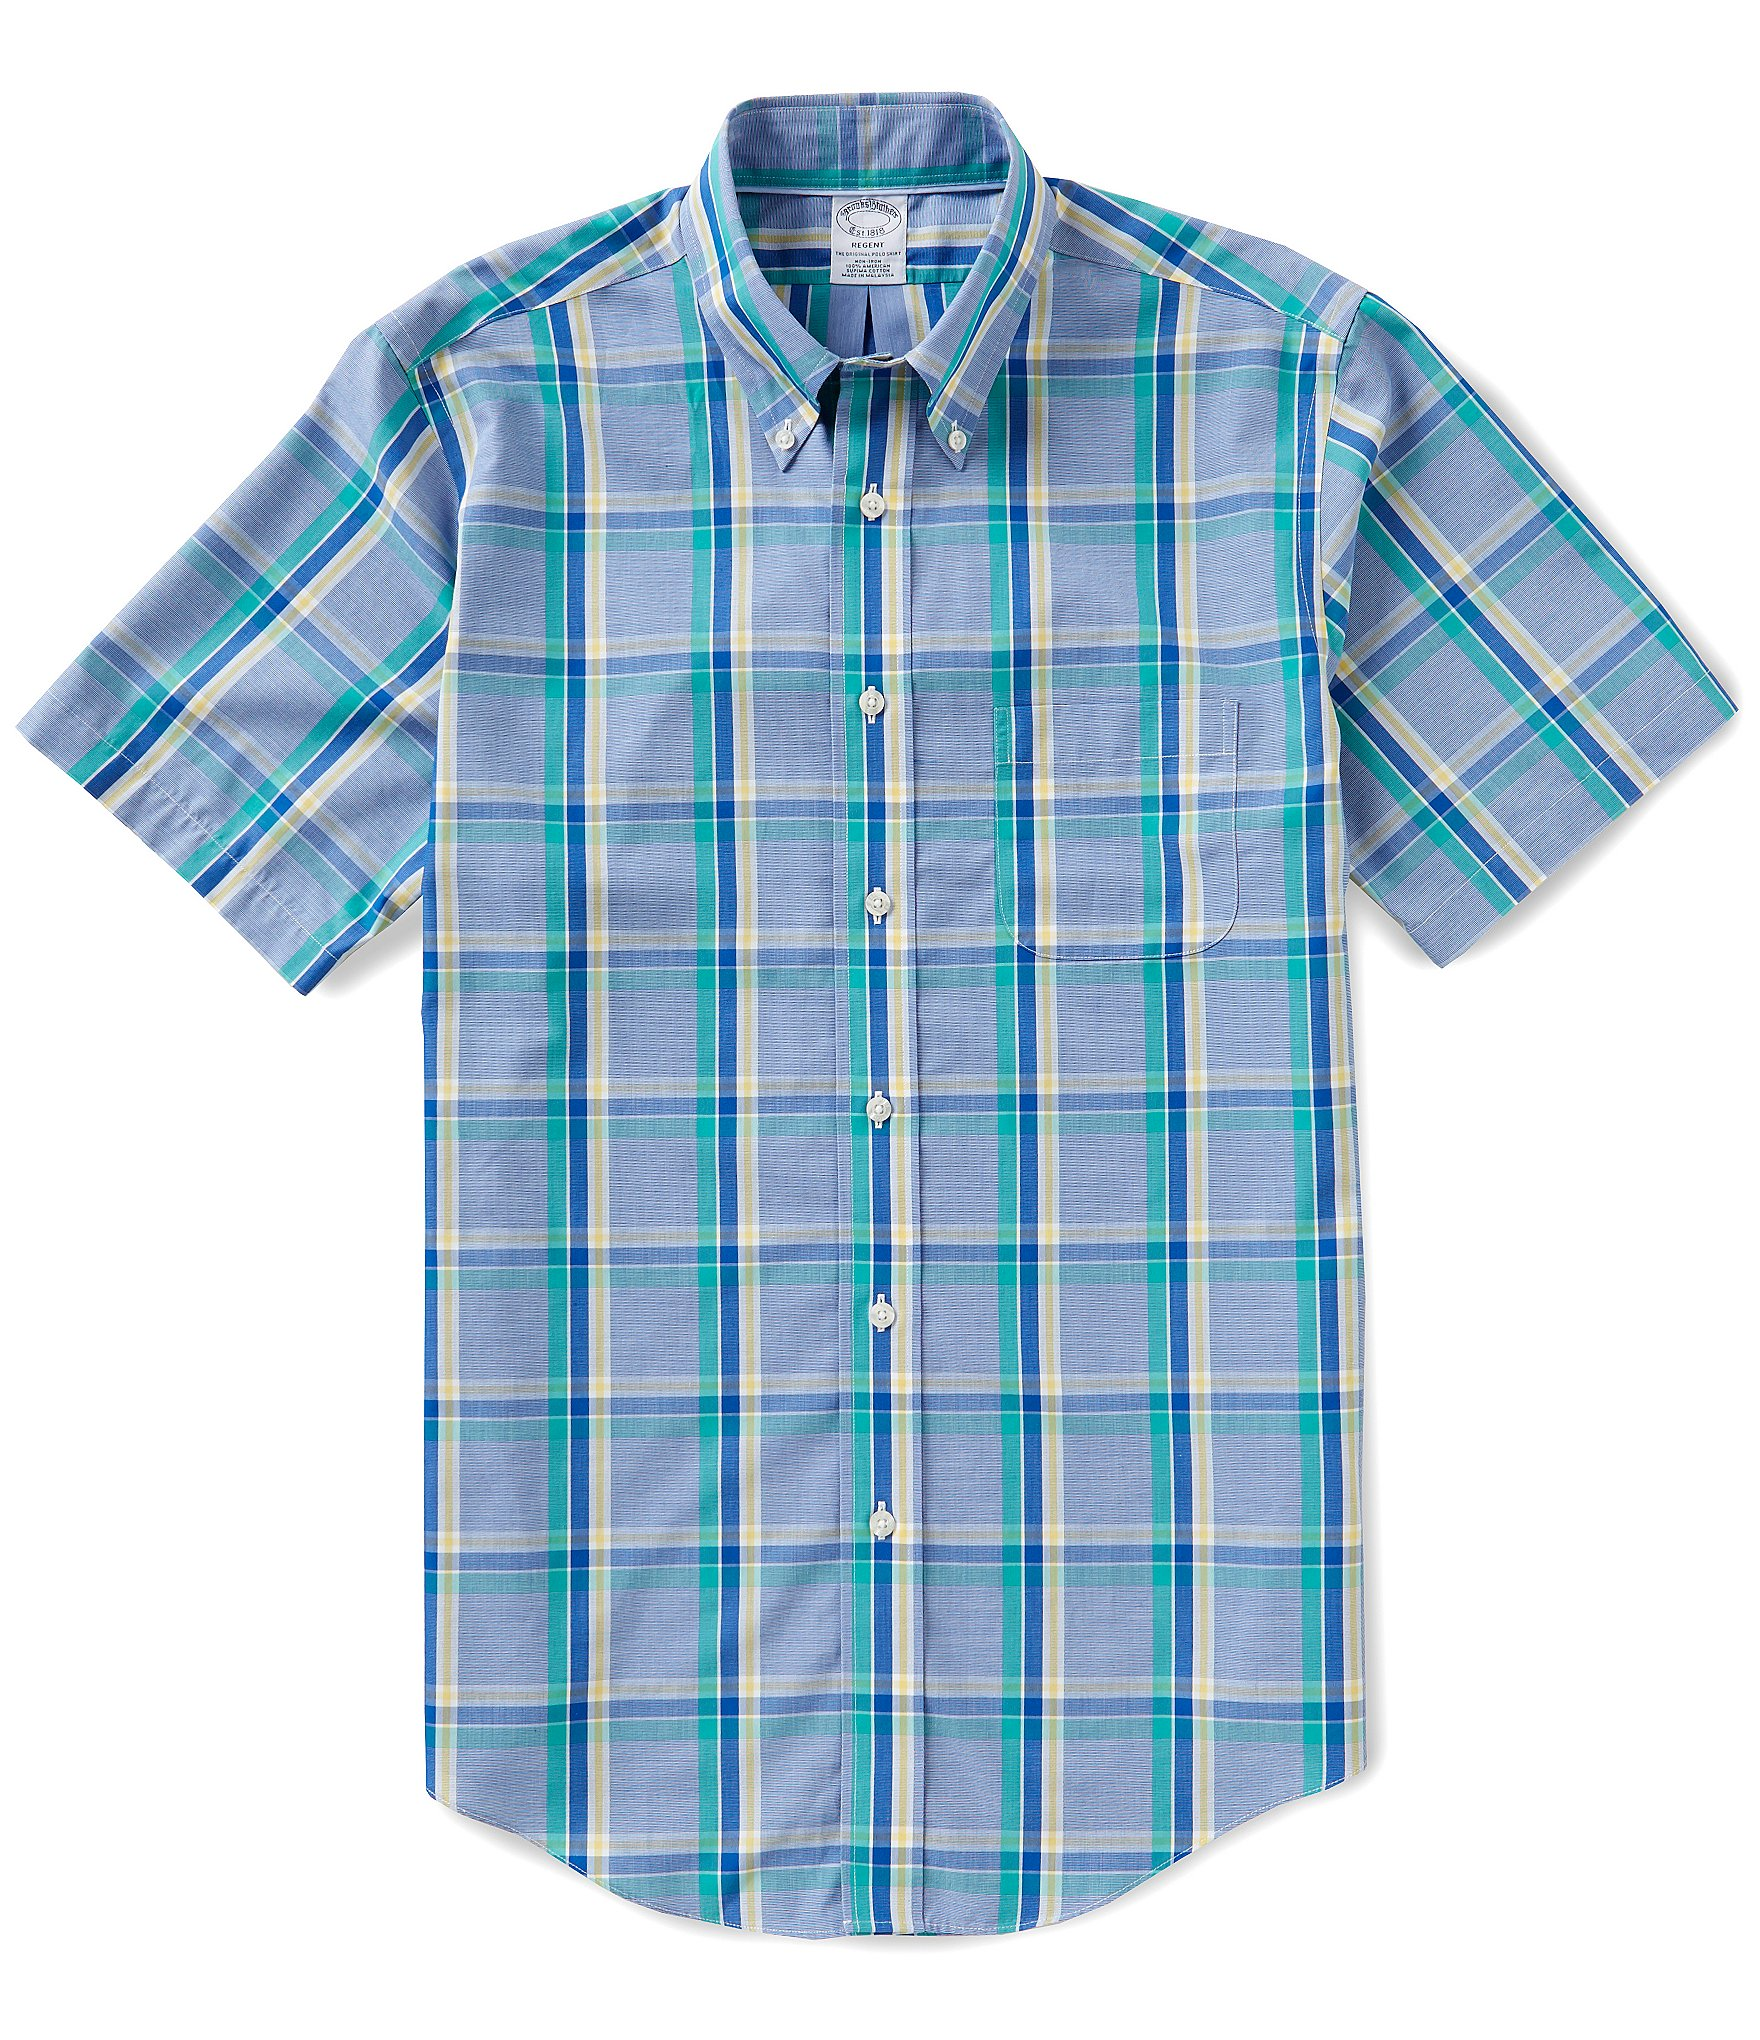 Brooks brothers non iron slim fit plaid short sleeve woven for Brooks brothers non iron shirt review